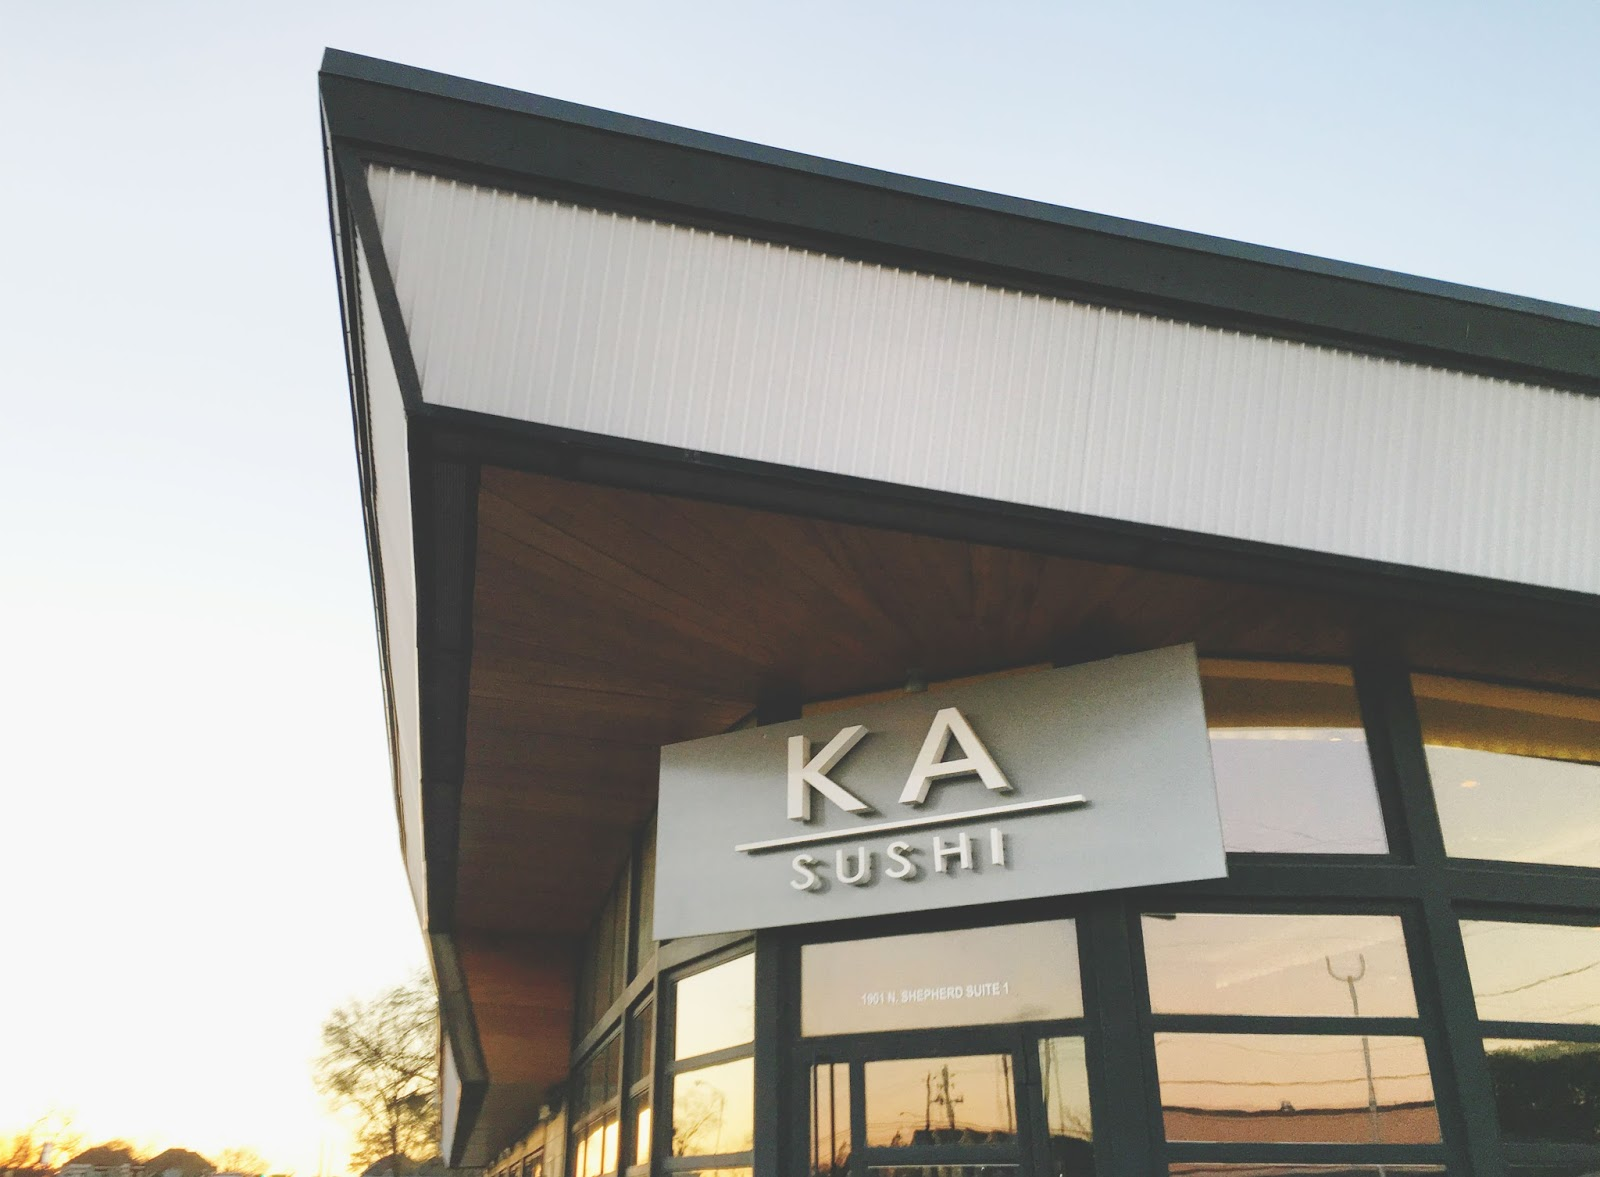 ka sushi, a restaurant in Houston, Texas